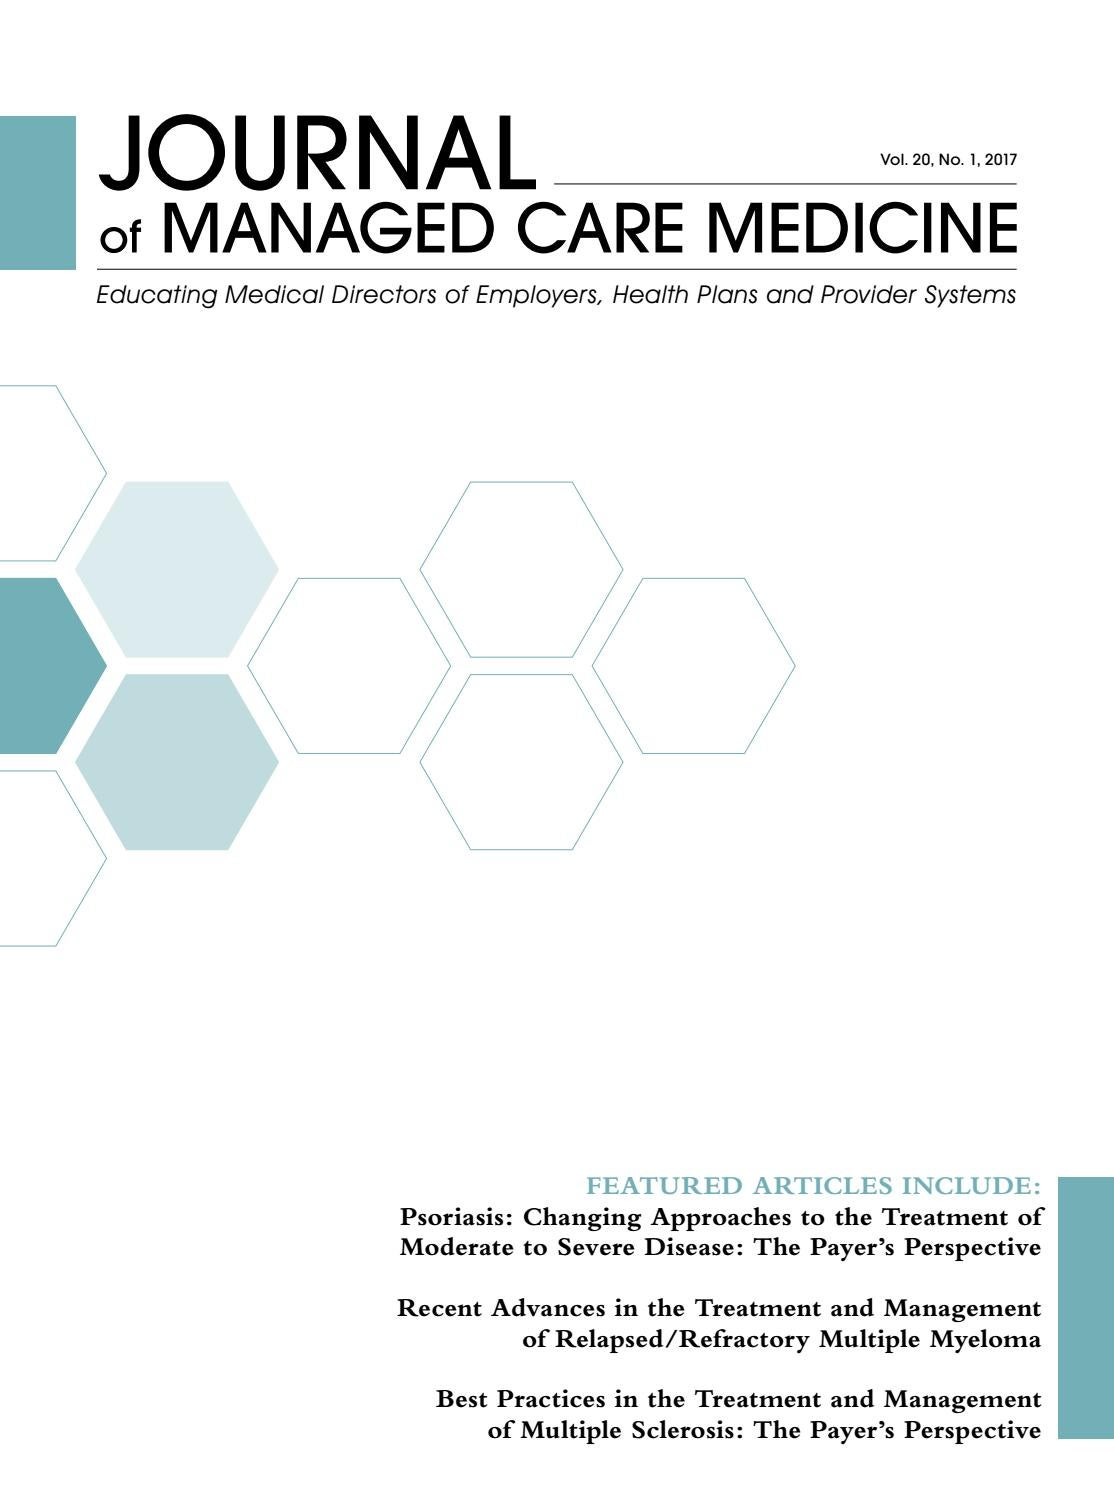 Harga Jual Hepa Merz Granul Update 2018 Tcash Vaganza 37 Pierre Cardin Handuk Mandi Pc9968 Pink Journal Of Managed Care Medicine Volume 20 Number 1 By Jeremy Williams Issuu